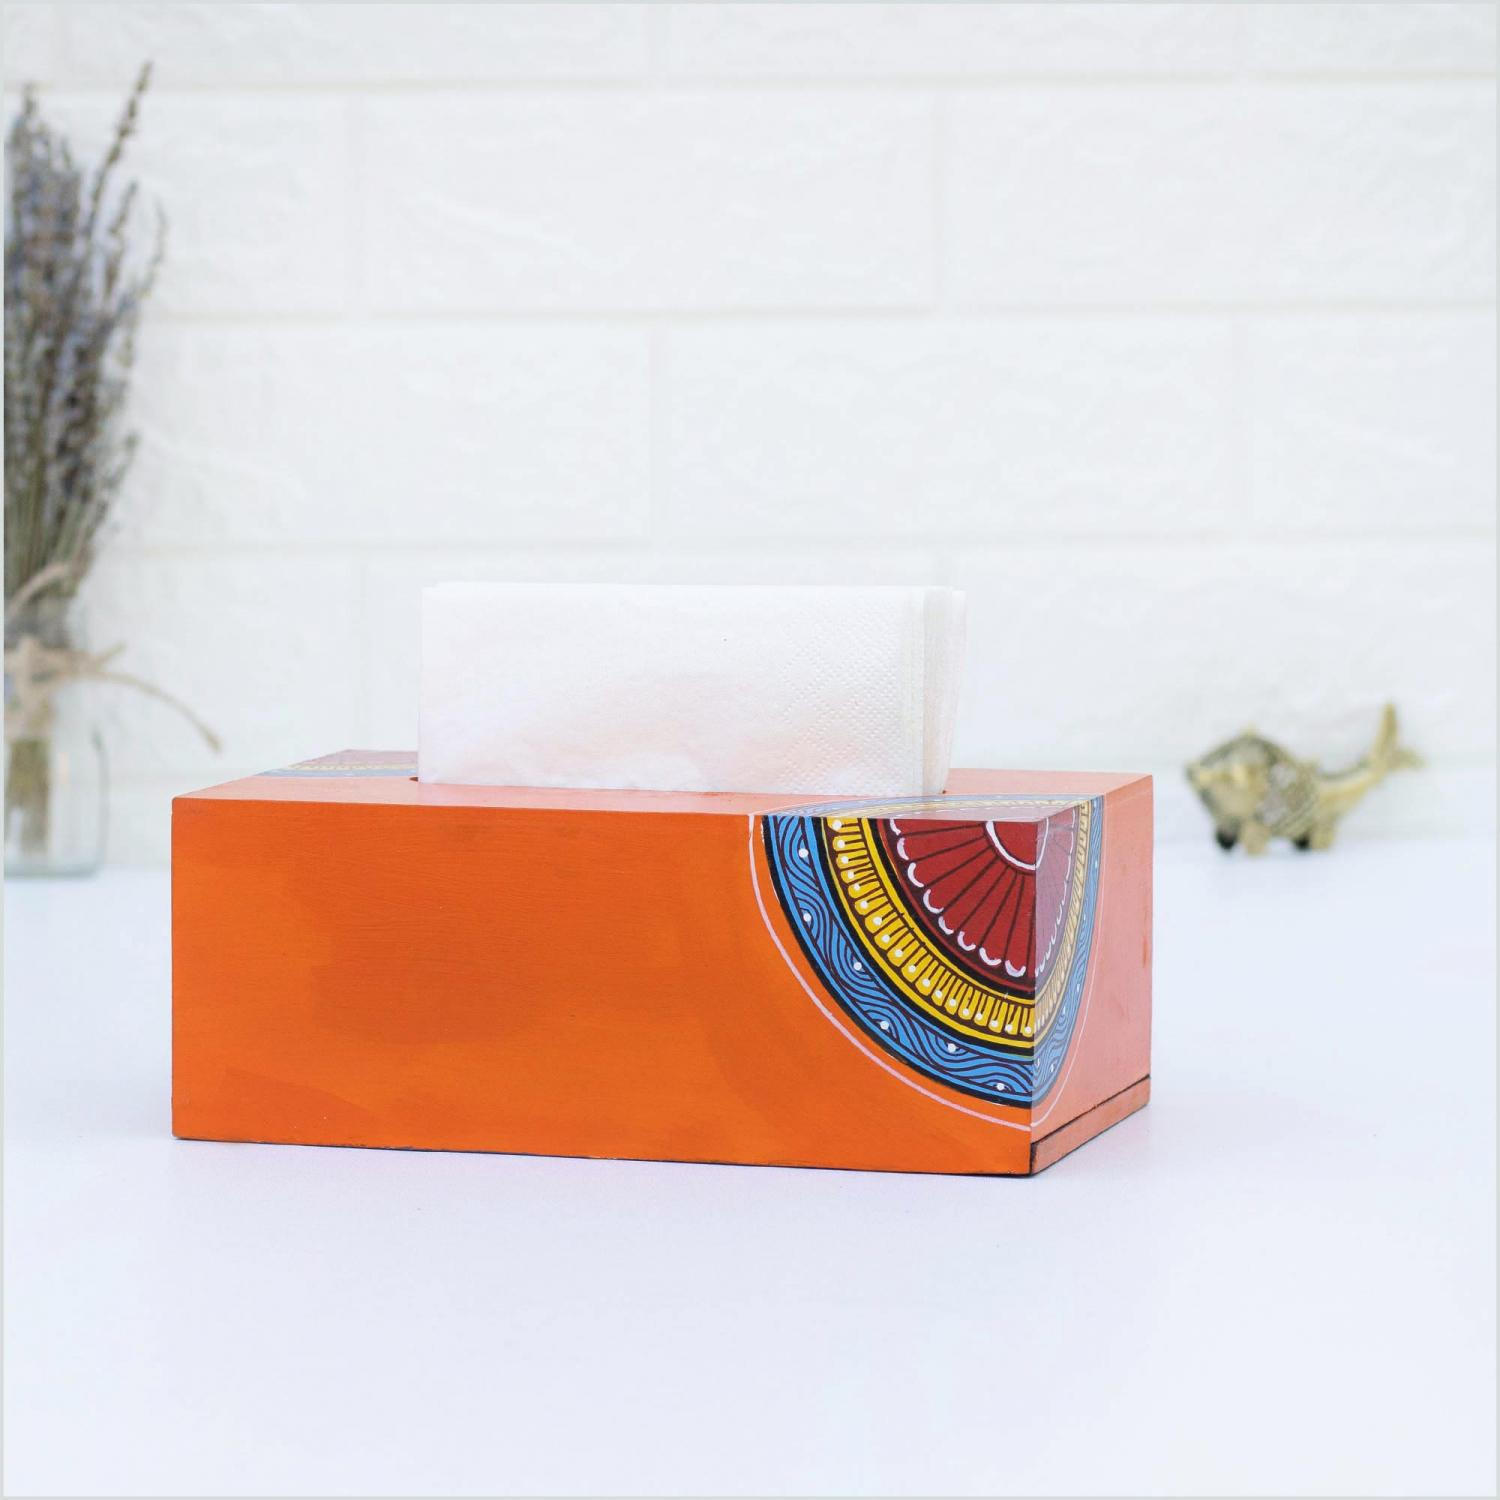 Orange napkin holder with blue, yellow and red motifs holding white napkins and standing on a white surface with a brass figurine, a vase with dried lavender and a white wall in the background